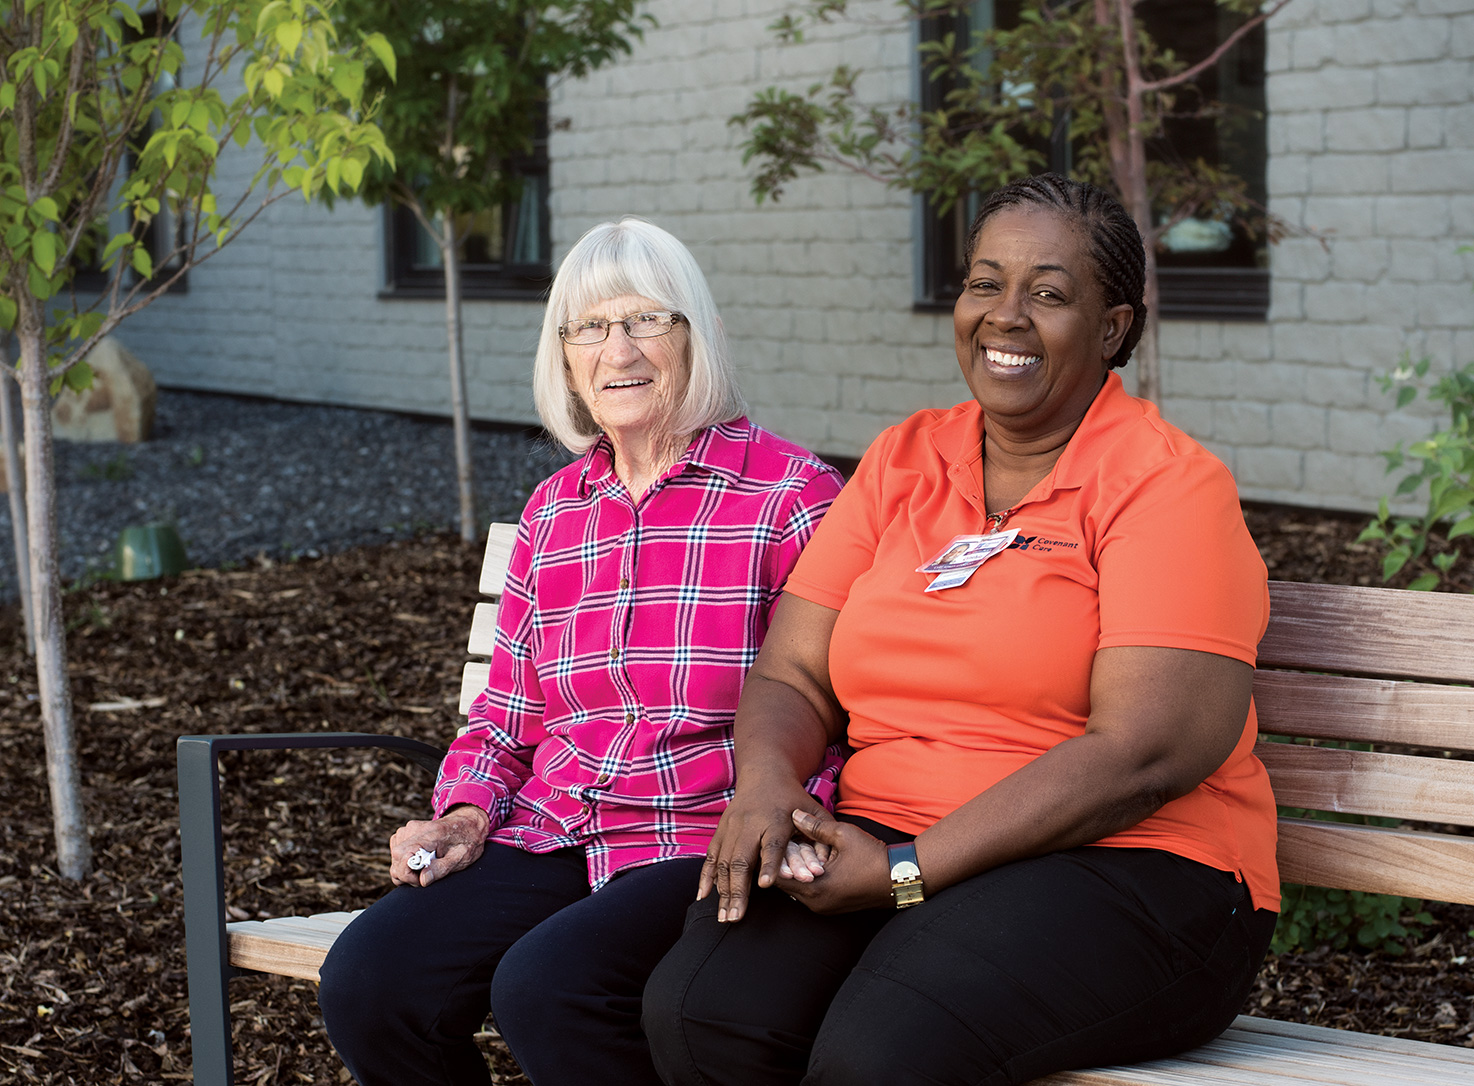 Cynthia Delgado (right) and Marj enjoy spending time together at St. Teresa Place. Photo by Jared Sych.